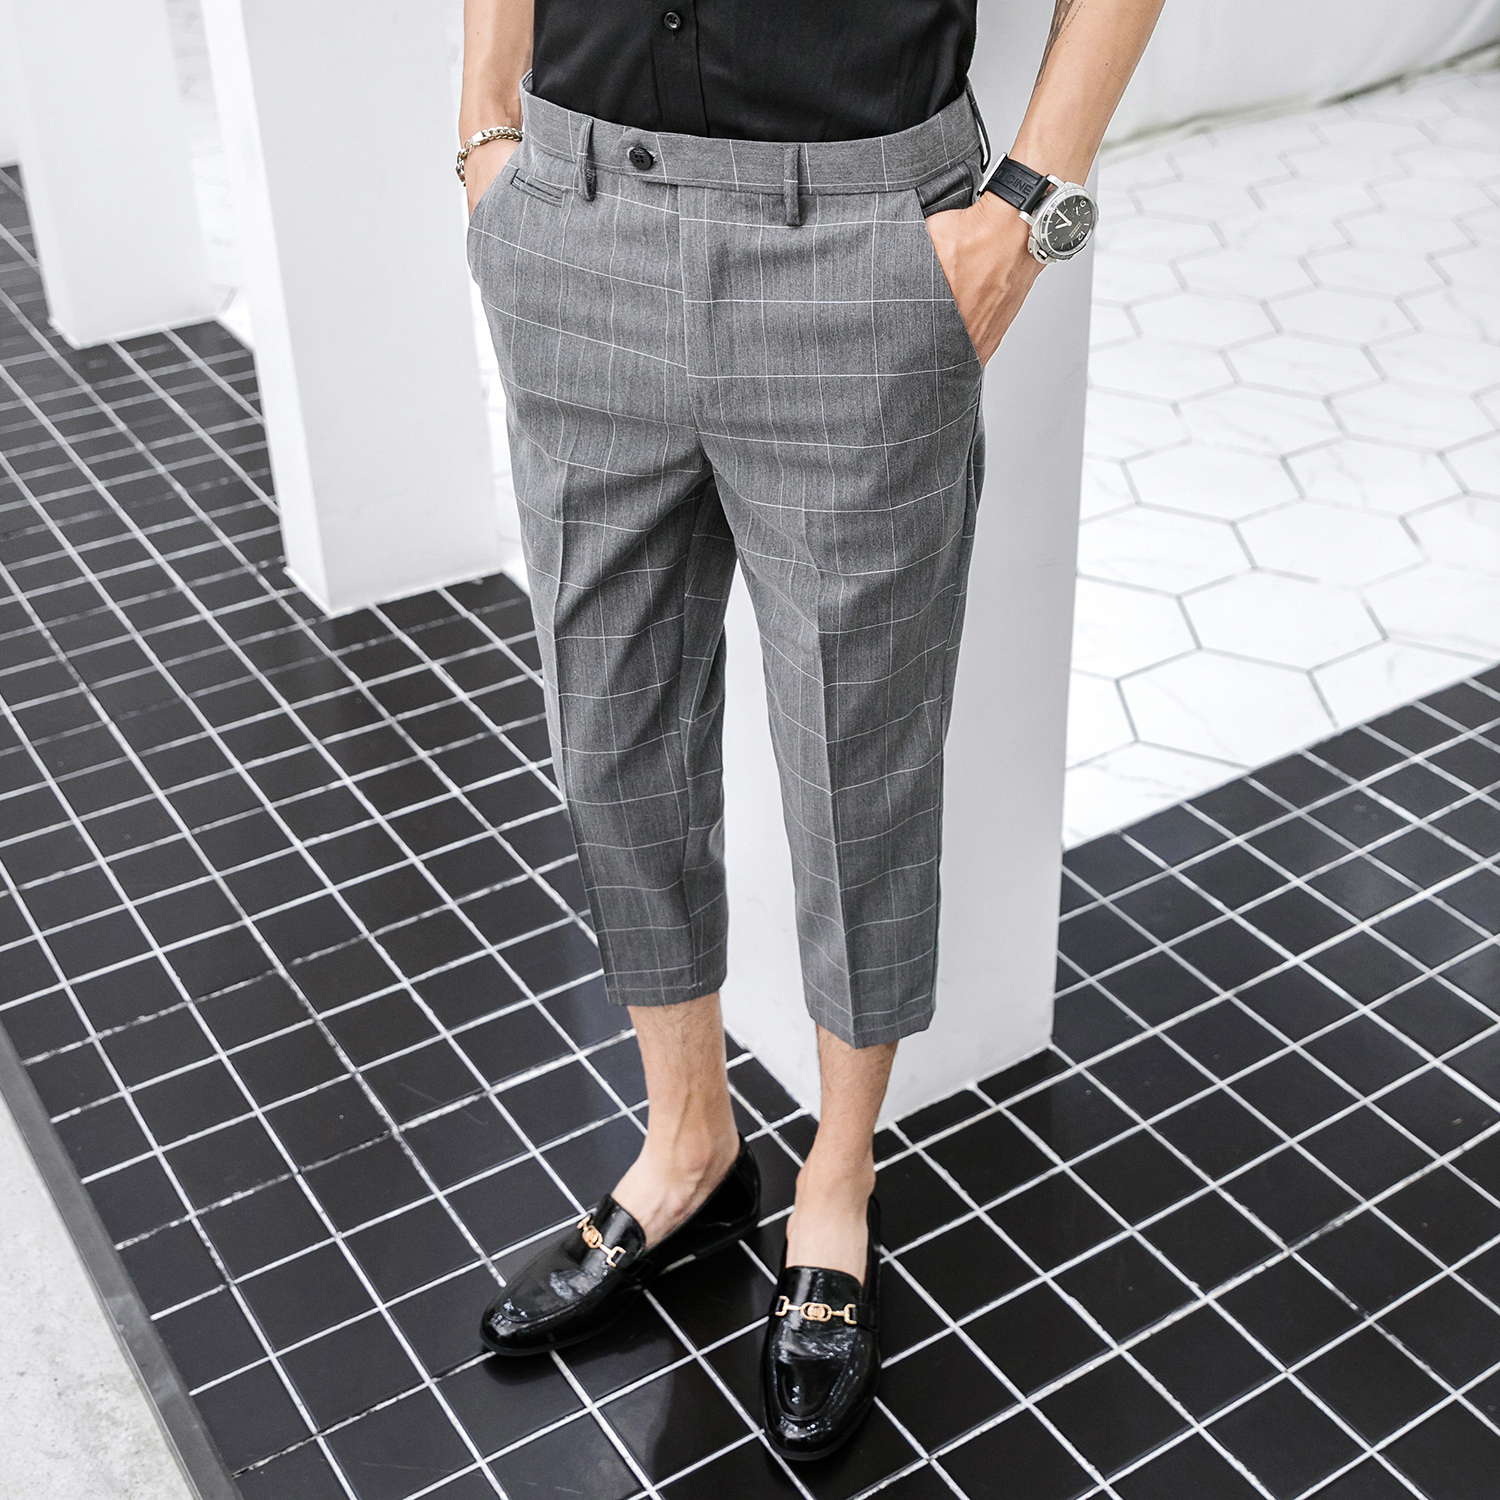 2020 Men Vintage Plaid Suit Pants Formal Dress Pant Business Casual Slim Pantalon Classic Check Suit Trousers Wedding Party 36 Buy At The Price Of 18 98 In Aliexpress Com Imall Com